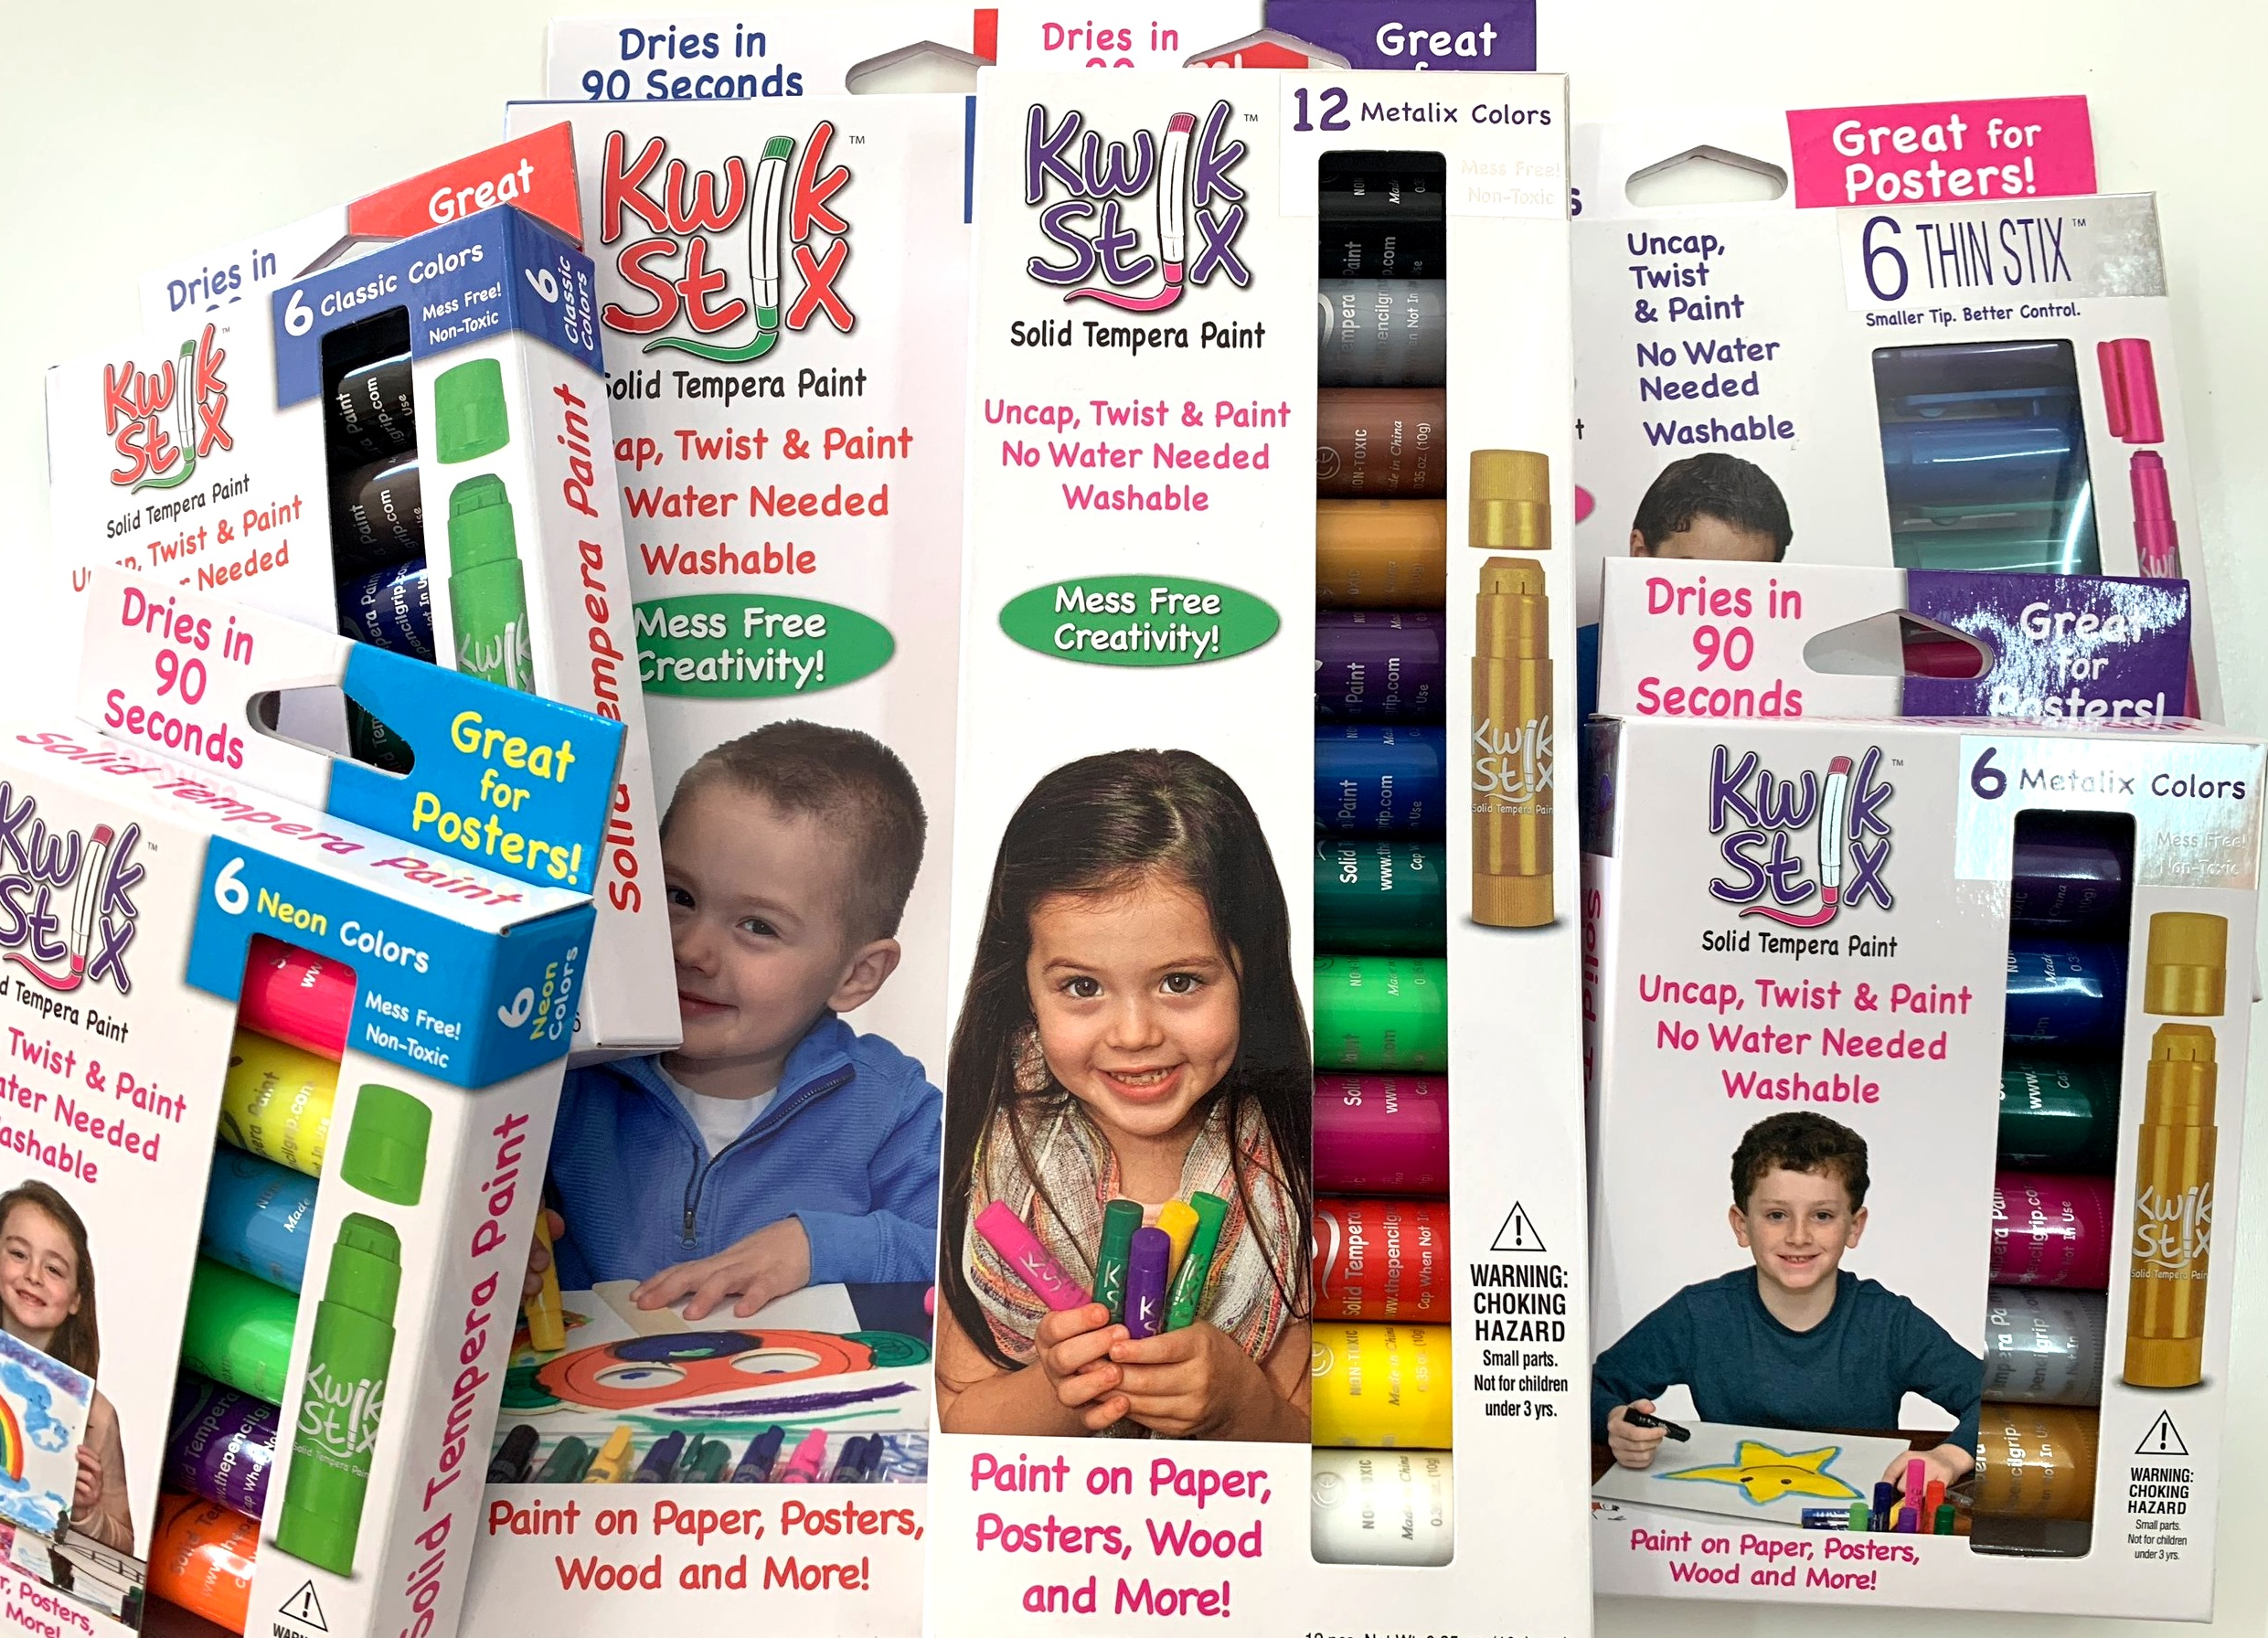 Kwik Sticks come in a variety of sizes and colors.